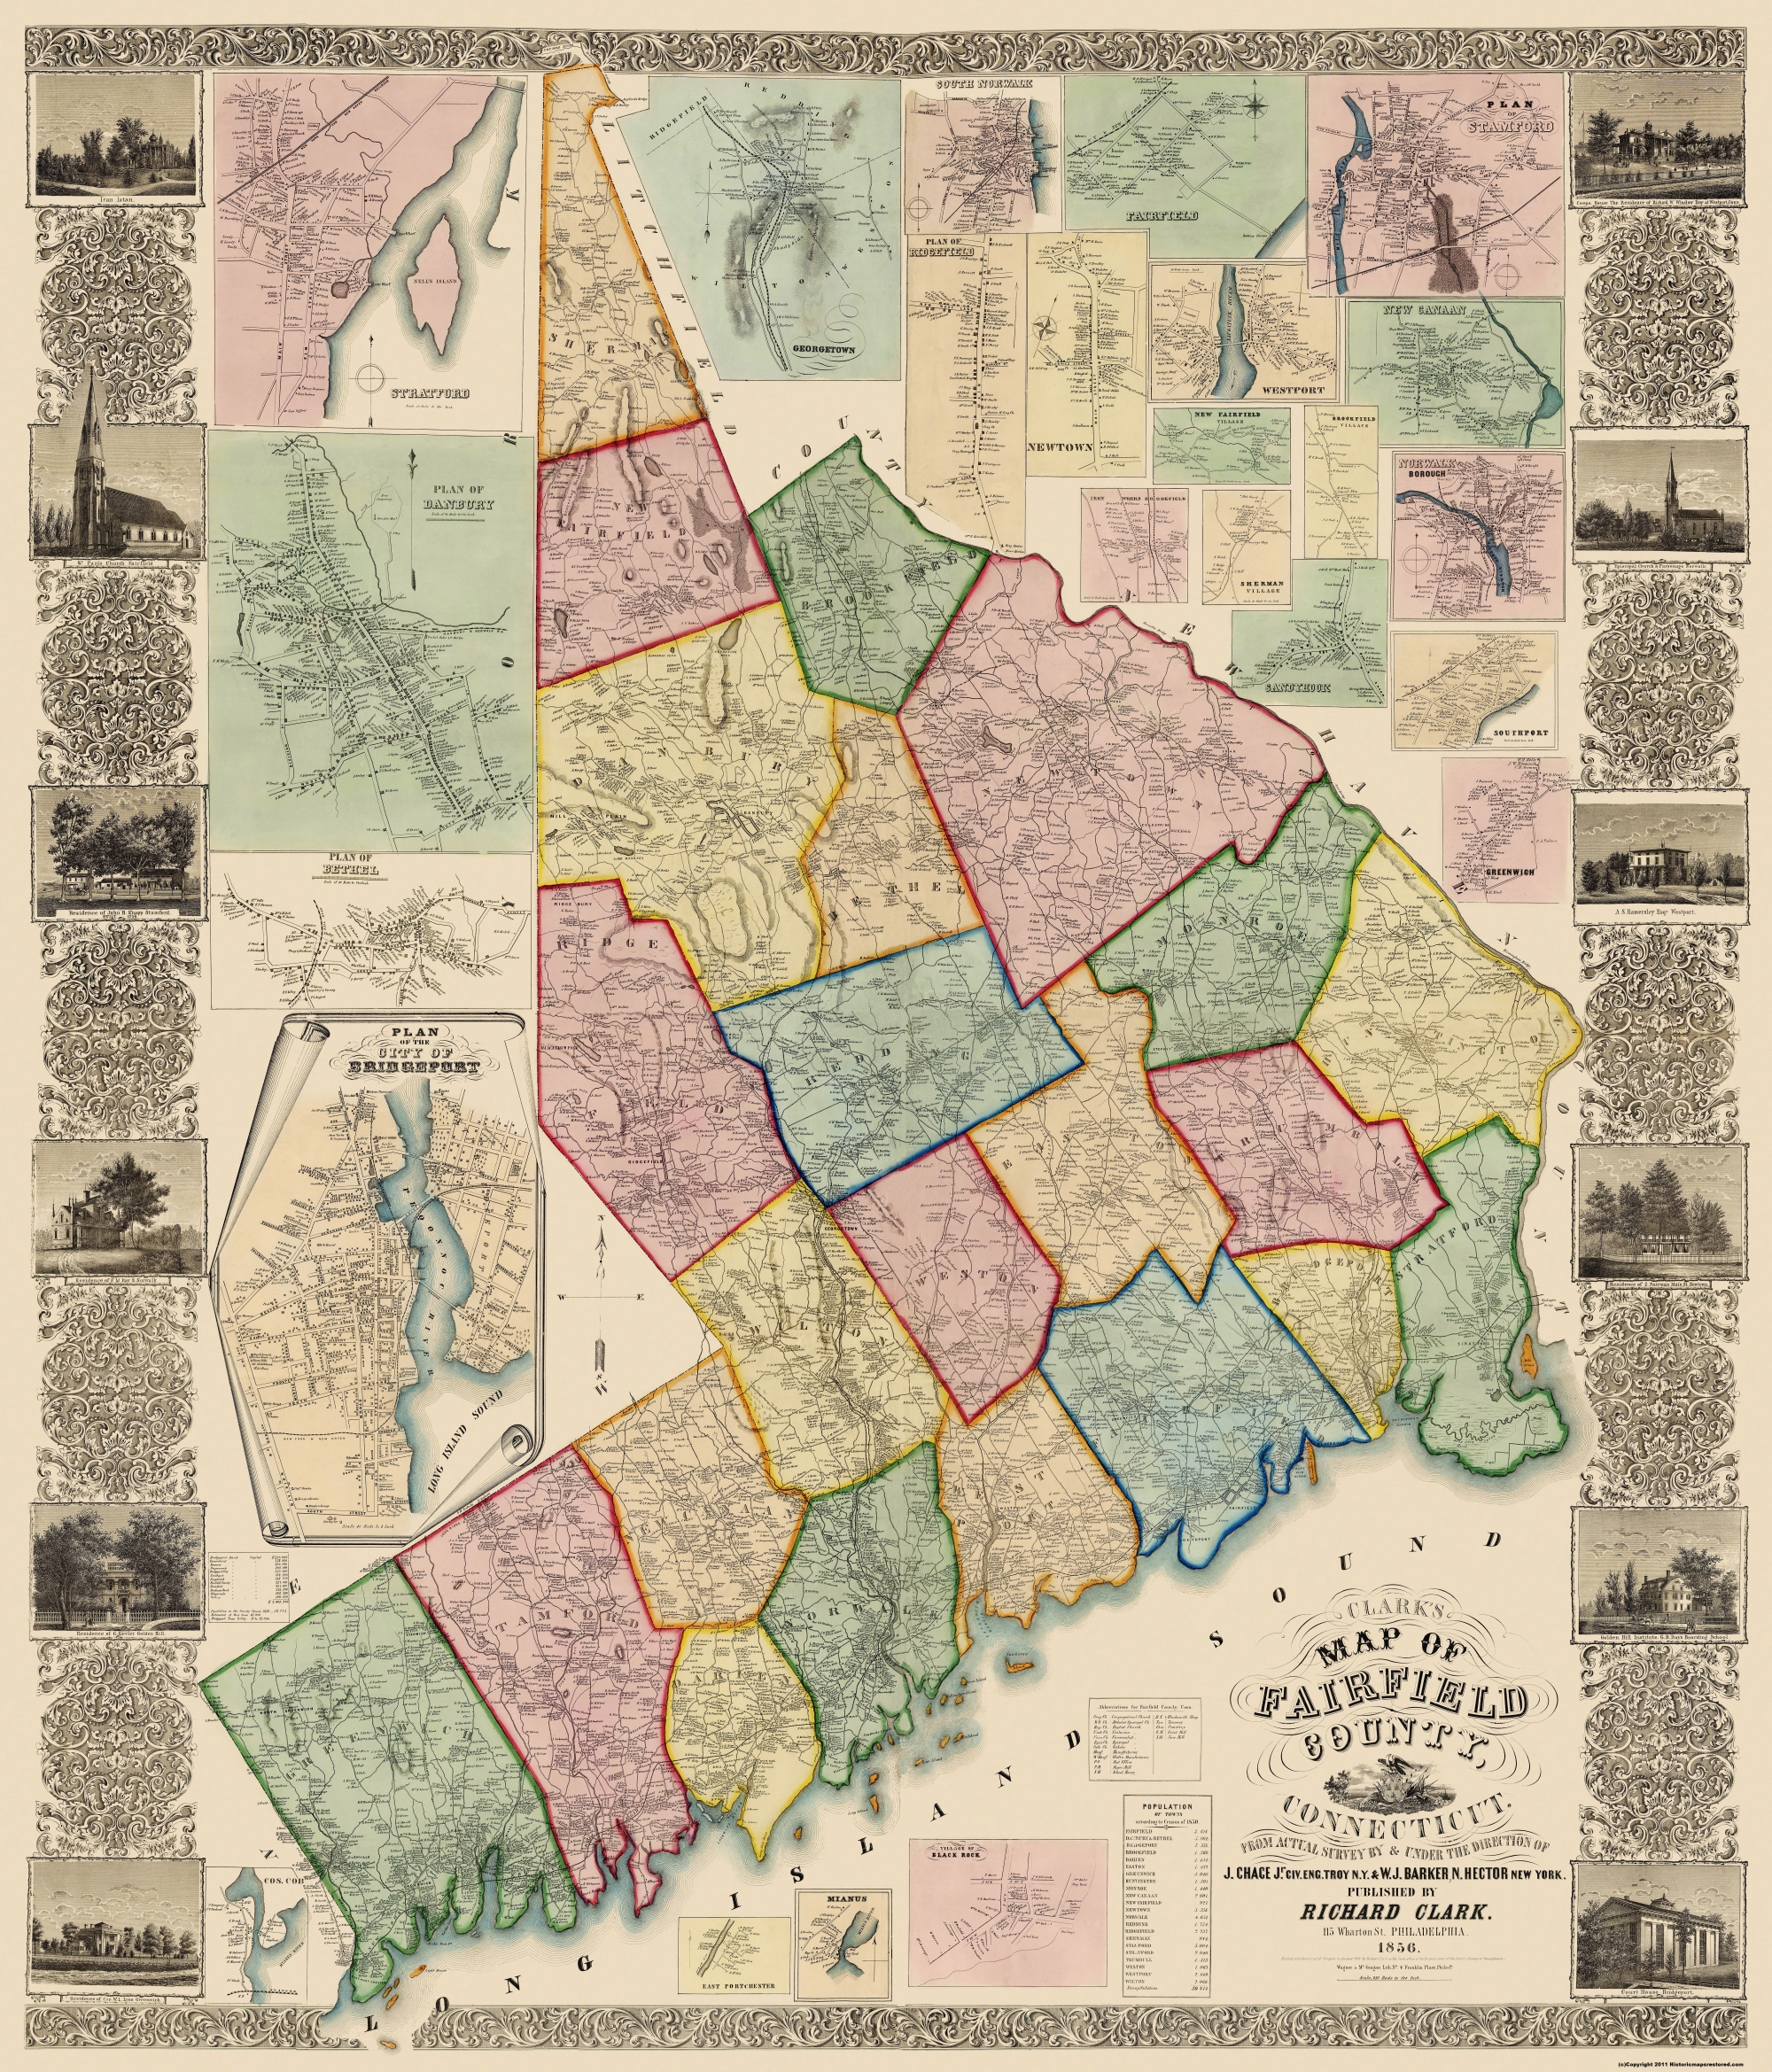 Old County Map - Fairfield Connecticut Landowner - 1856